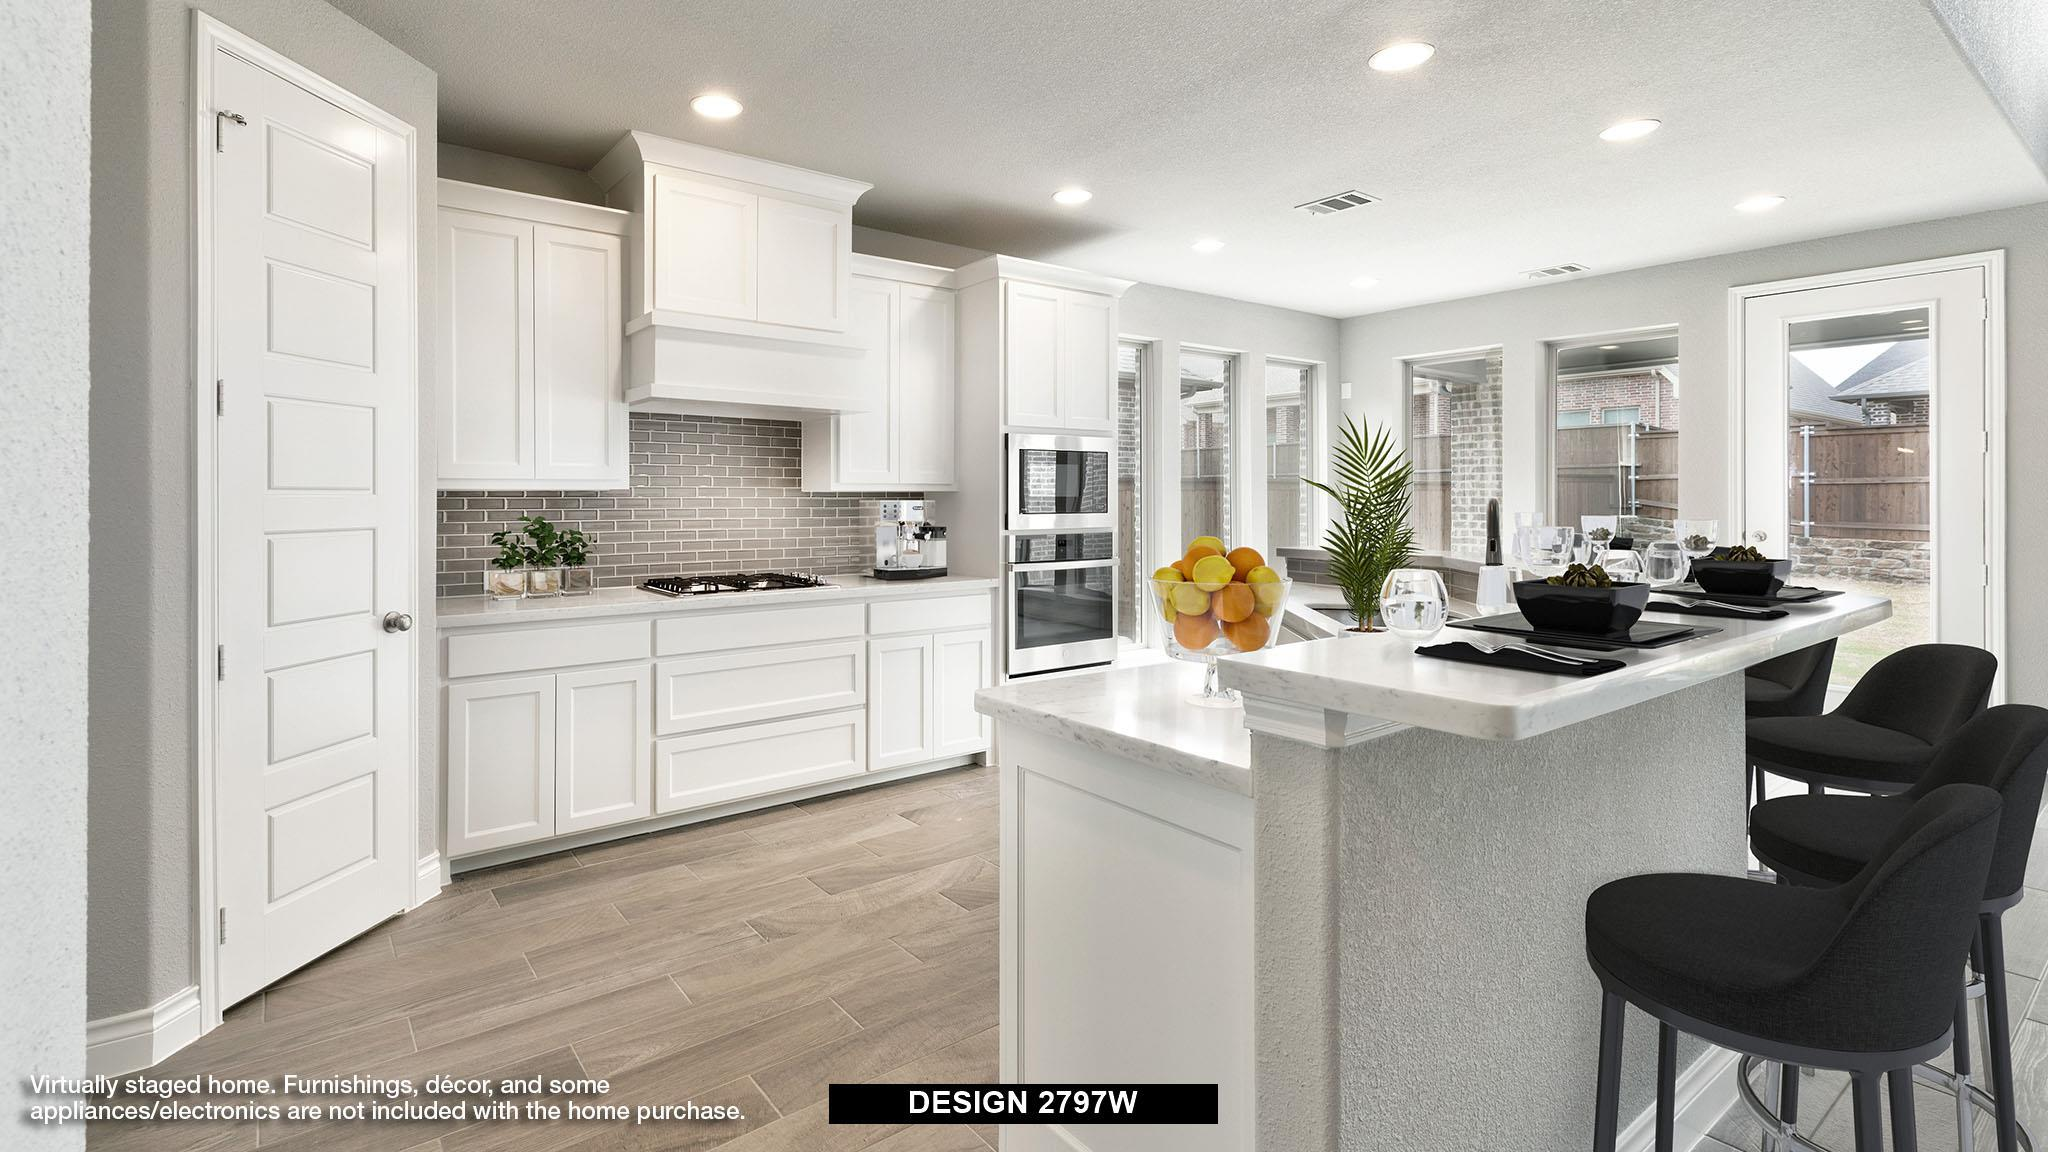 Kitchen featured in the 2797W By Perry Homes in Houston, TX